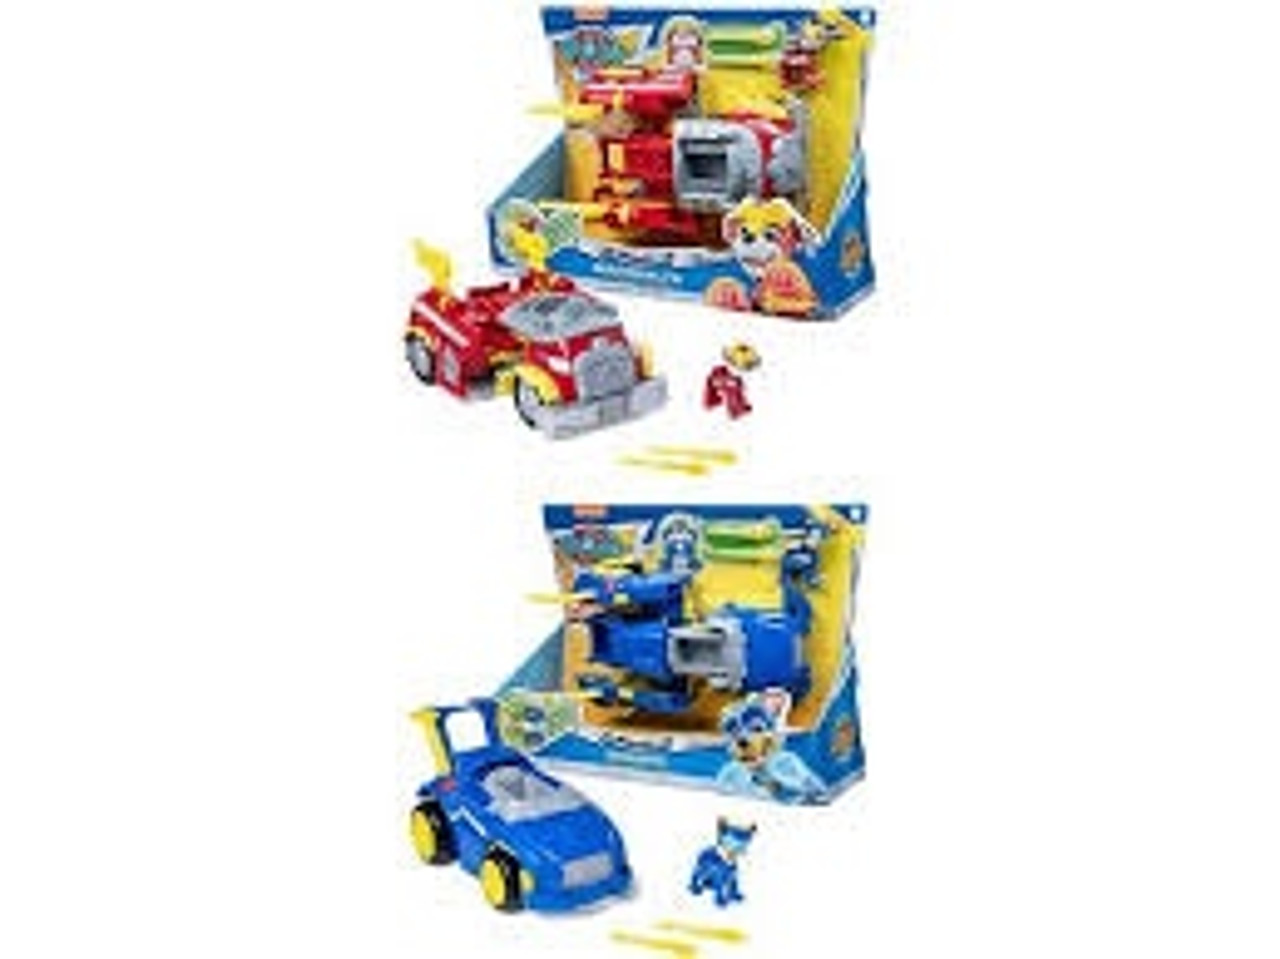 PAW PATROL POWER CHANGING VEHICLE ASST